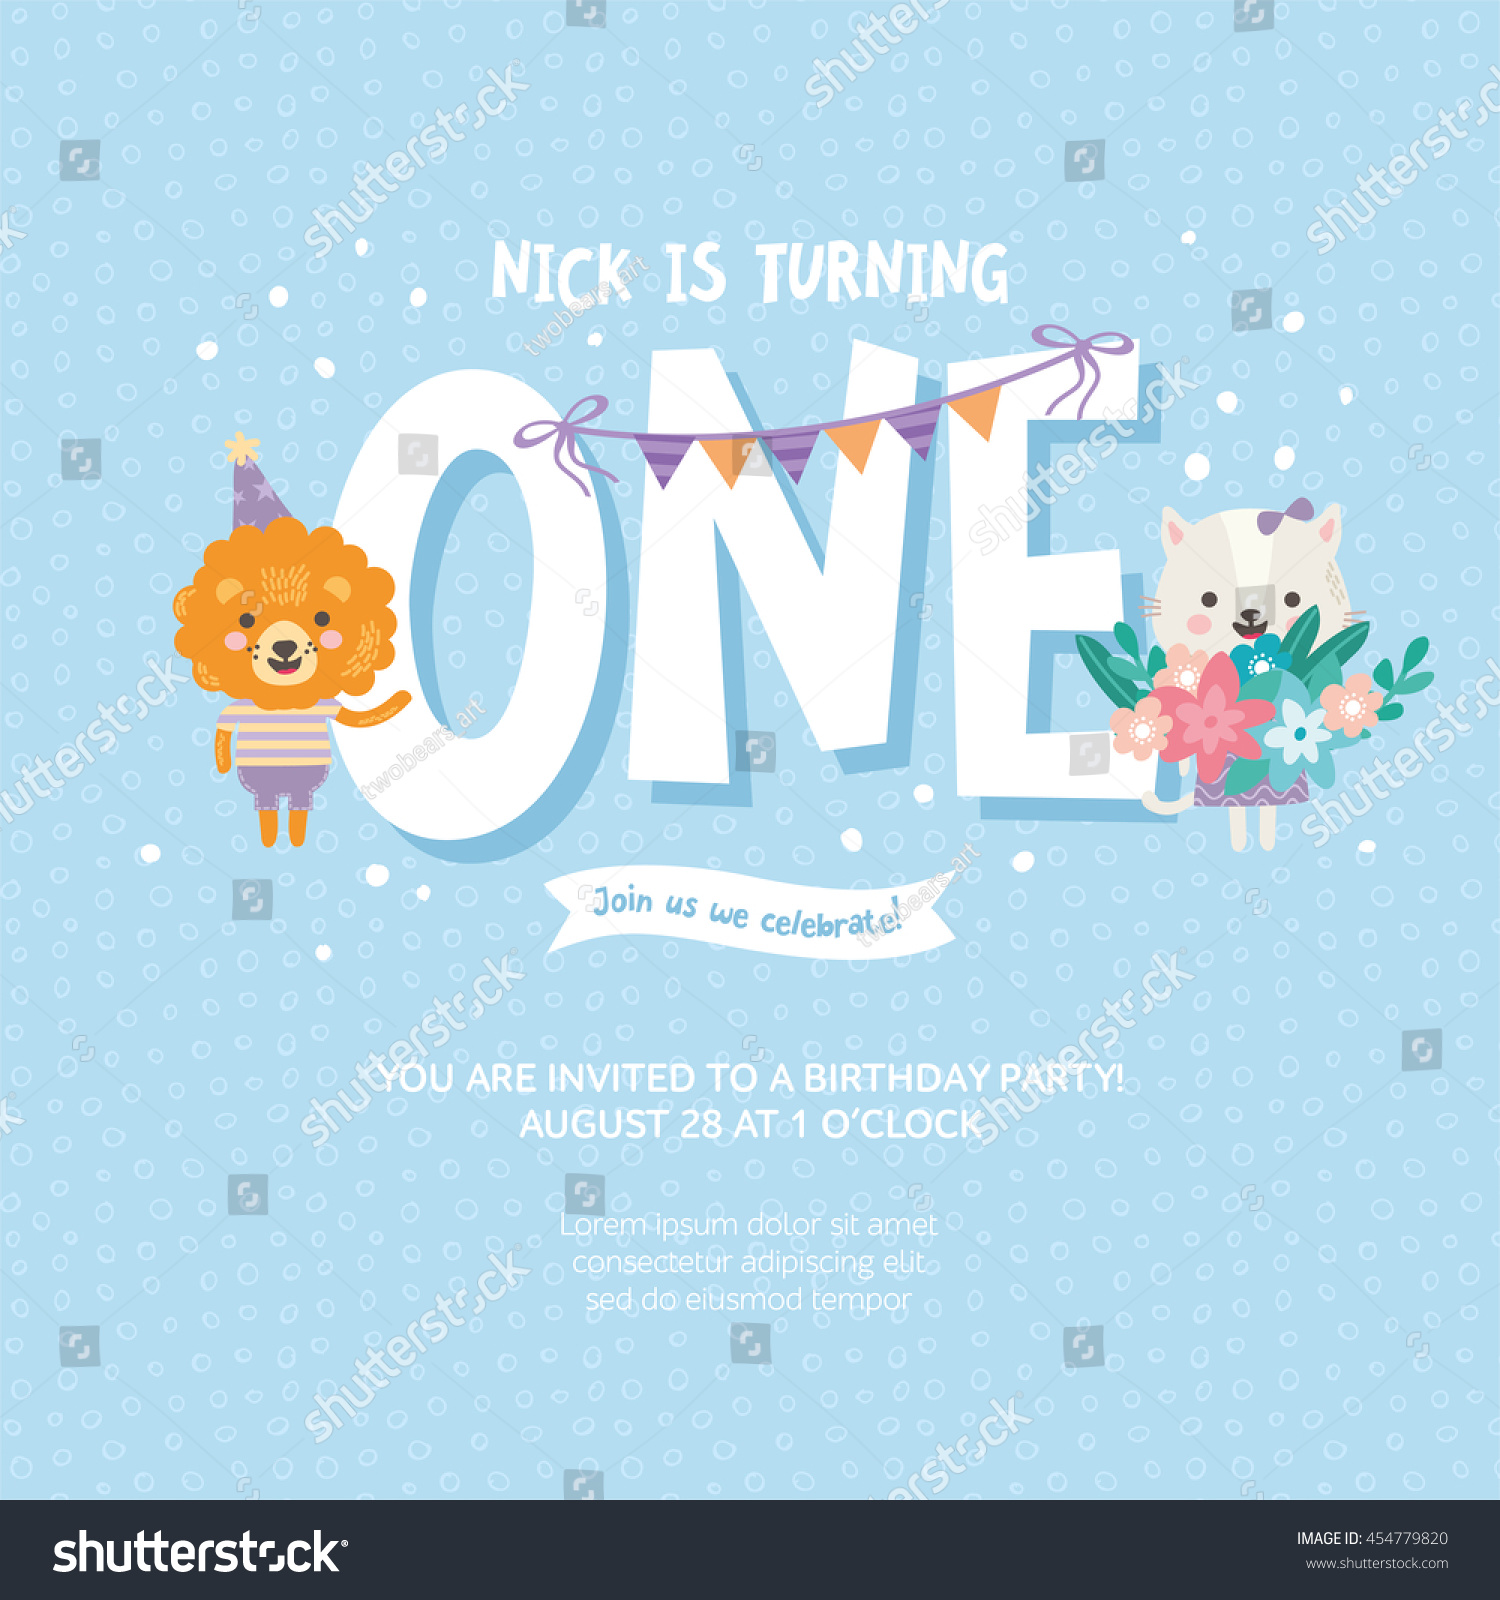 1 year birthday poster ; stock-vector-greeting-card-design-with-cute-lion-and-cat-happy-birthday-invitation-template-for-one-year-old-454779820